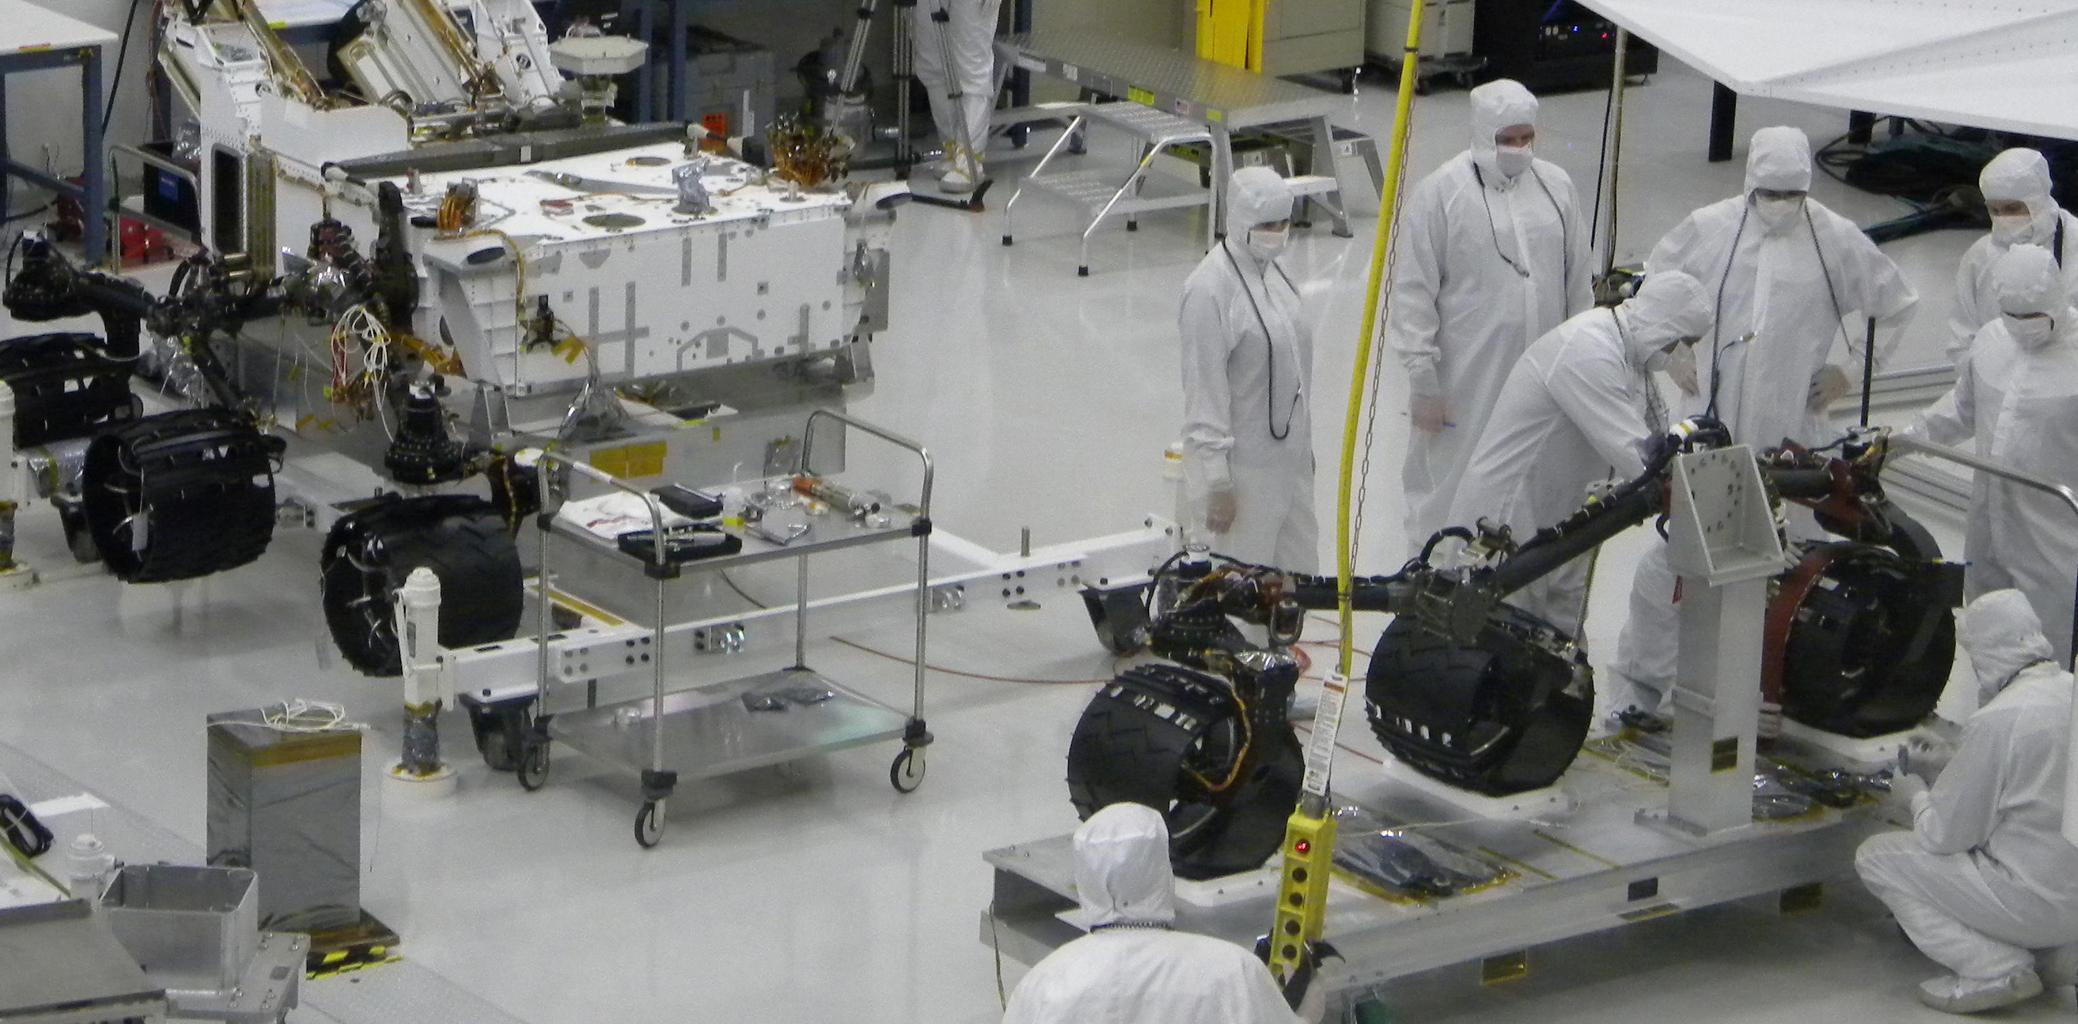 With the wheels and suspension system already installed onto one side of NASA's Mars rover Curiosity the previous day, spacecraft engineers and technicians prepare the other side's mobility subsystem for installation on June 29, 2010.